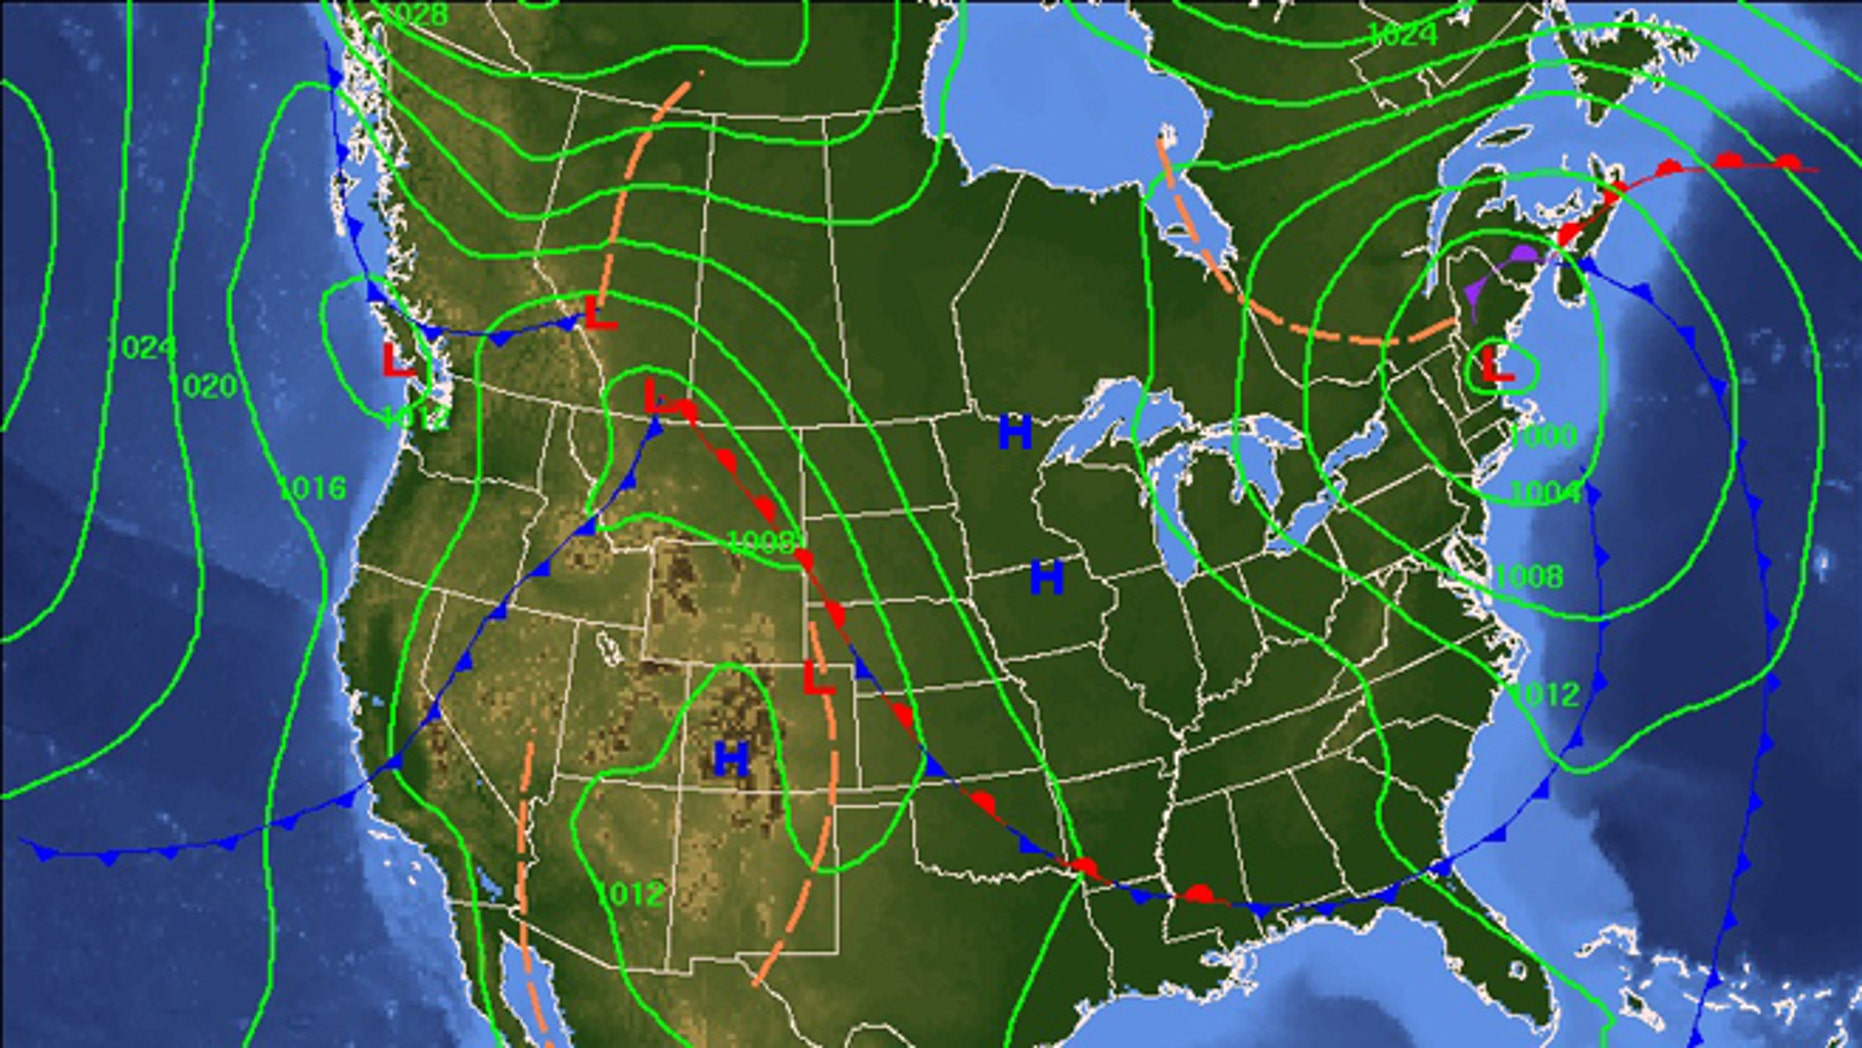 Nov. 1, 2012: A NOAA map shows 7-day sea level pressures and weather fronts. The National Weather Service's said Thursday that a nor'easter was possible for mid-Atlantic and New England states by Election Day through next Thursday.